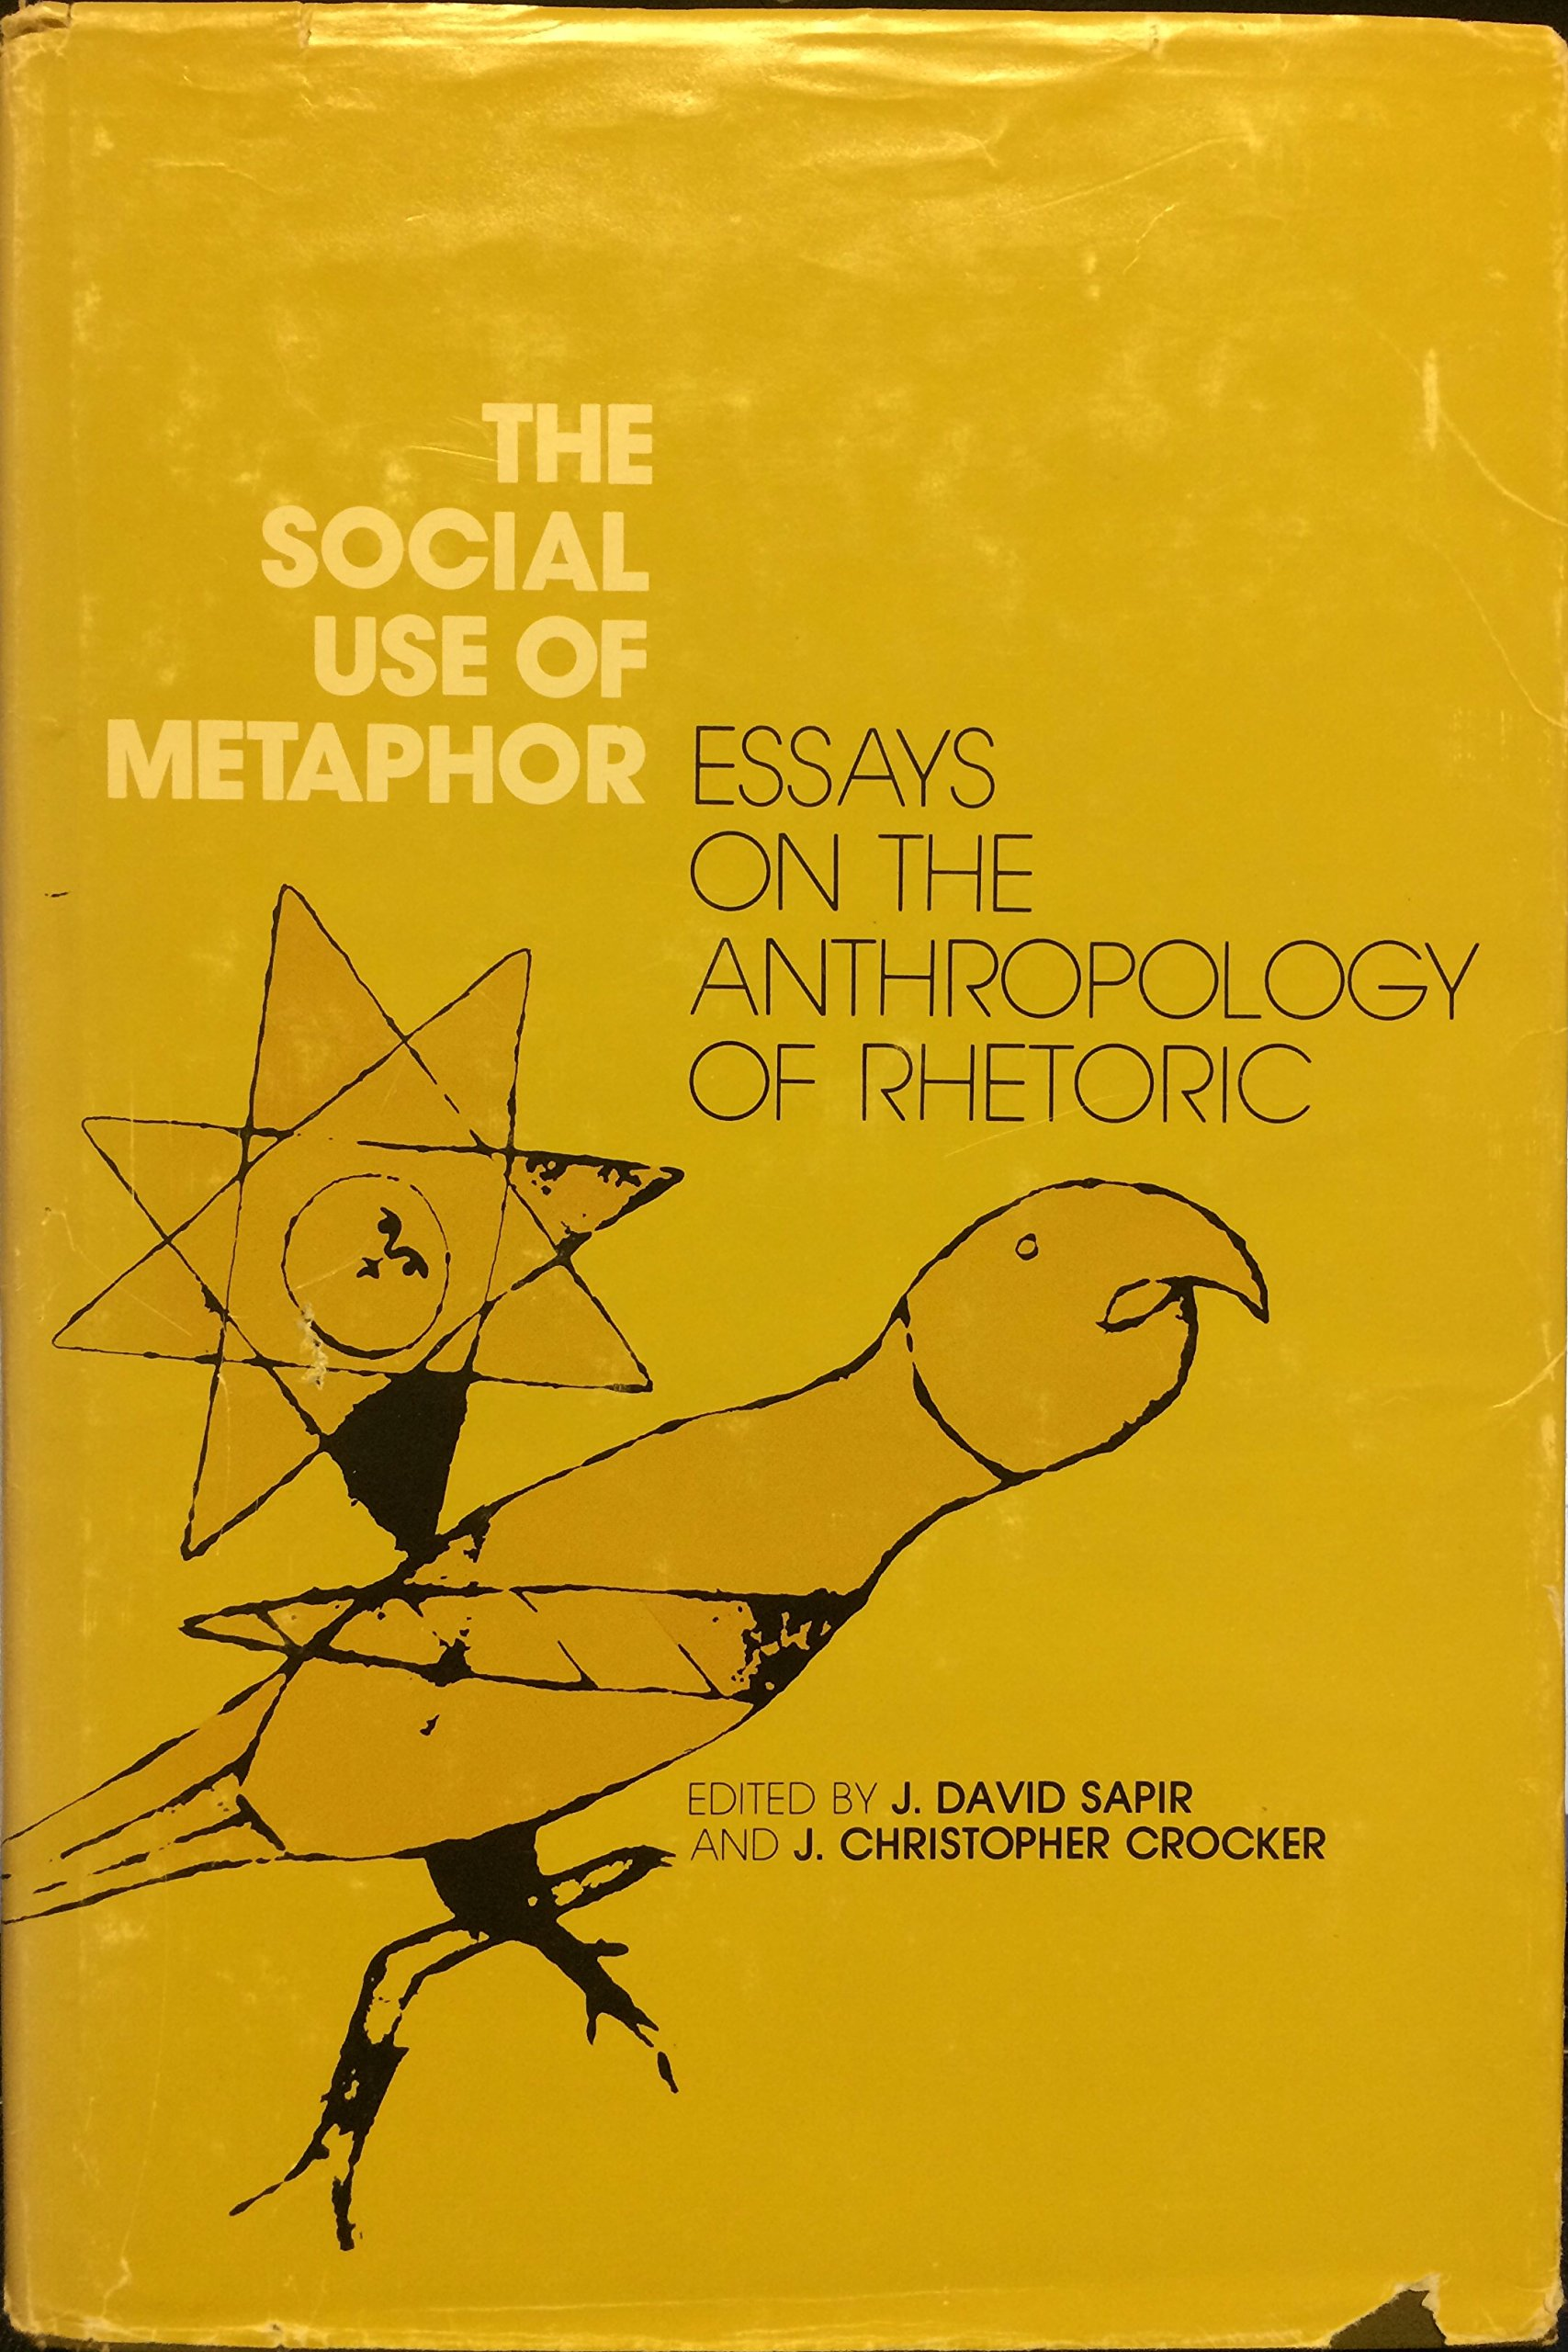 the social use of metaphor essays on the anthropology of rhetoric the social use of metaphor essays on the anthropology of rhetoric david j sapir christopher crocker 9780812277258 com books